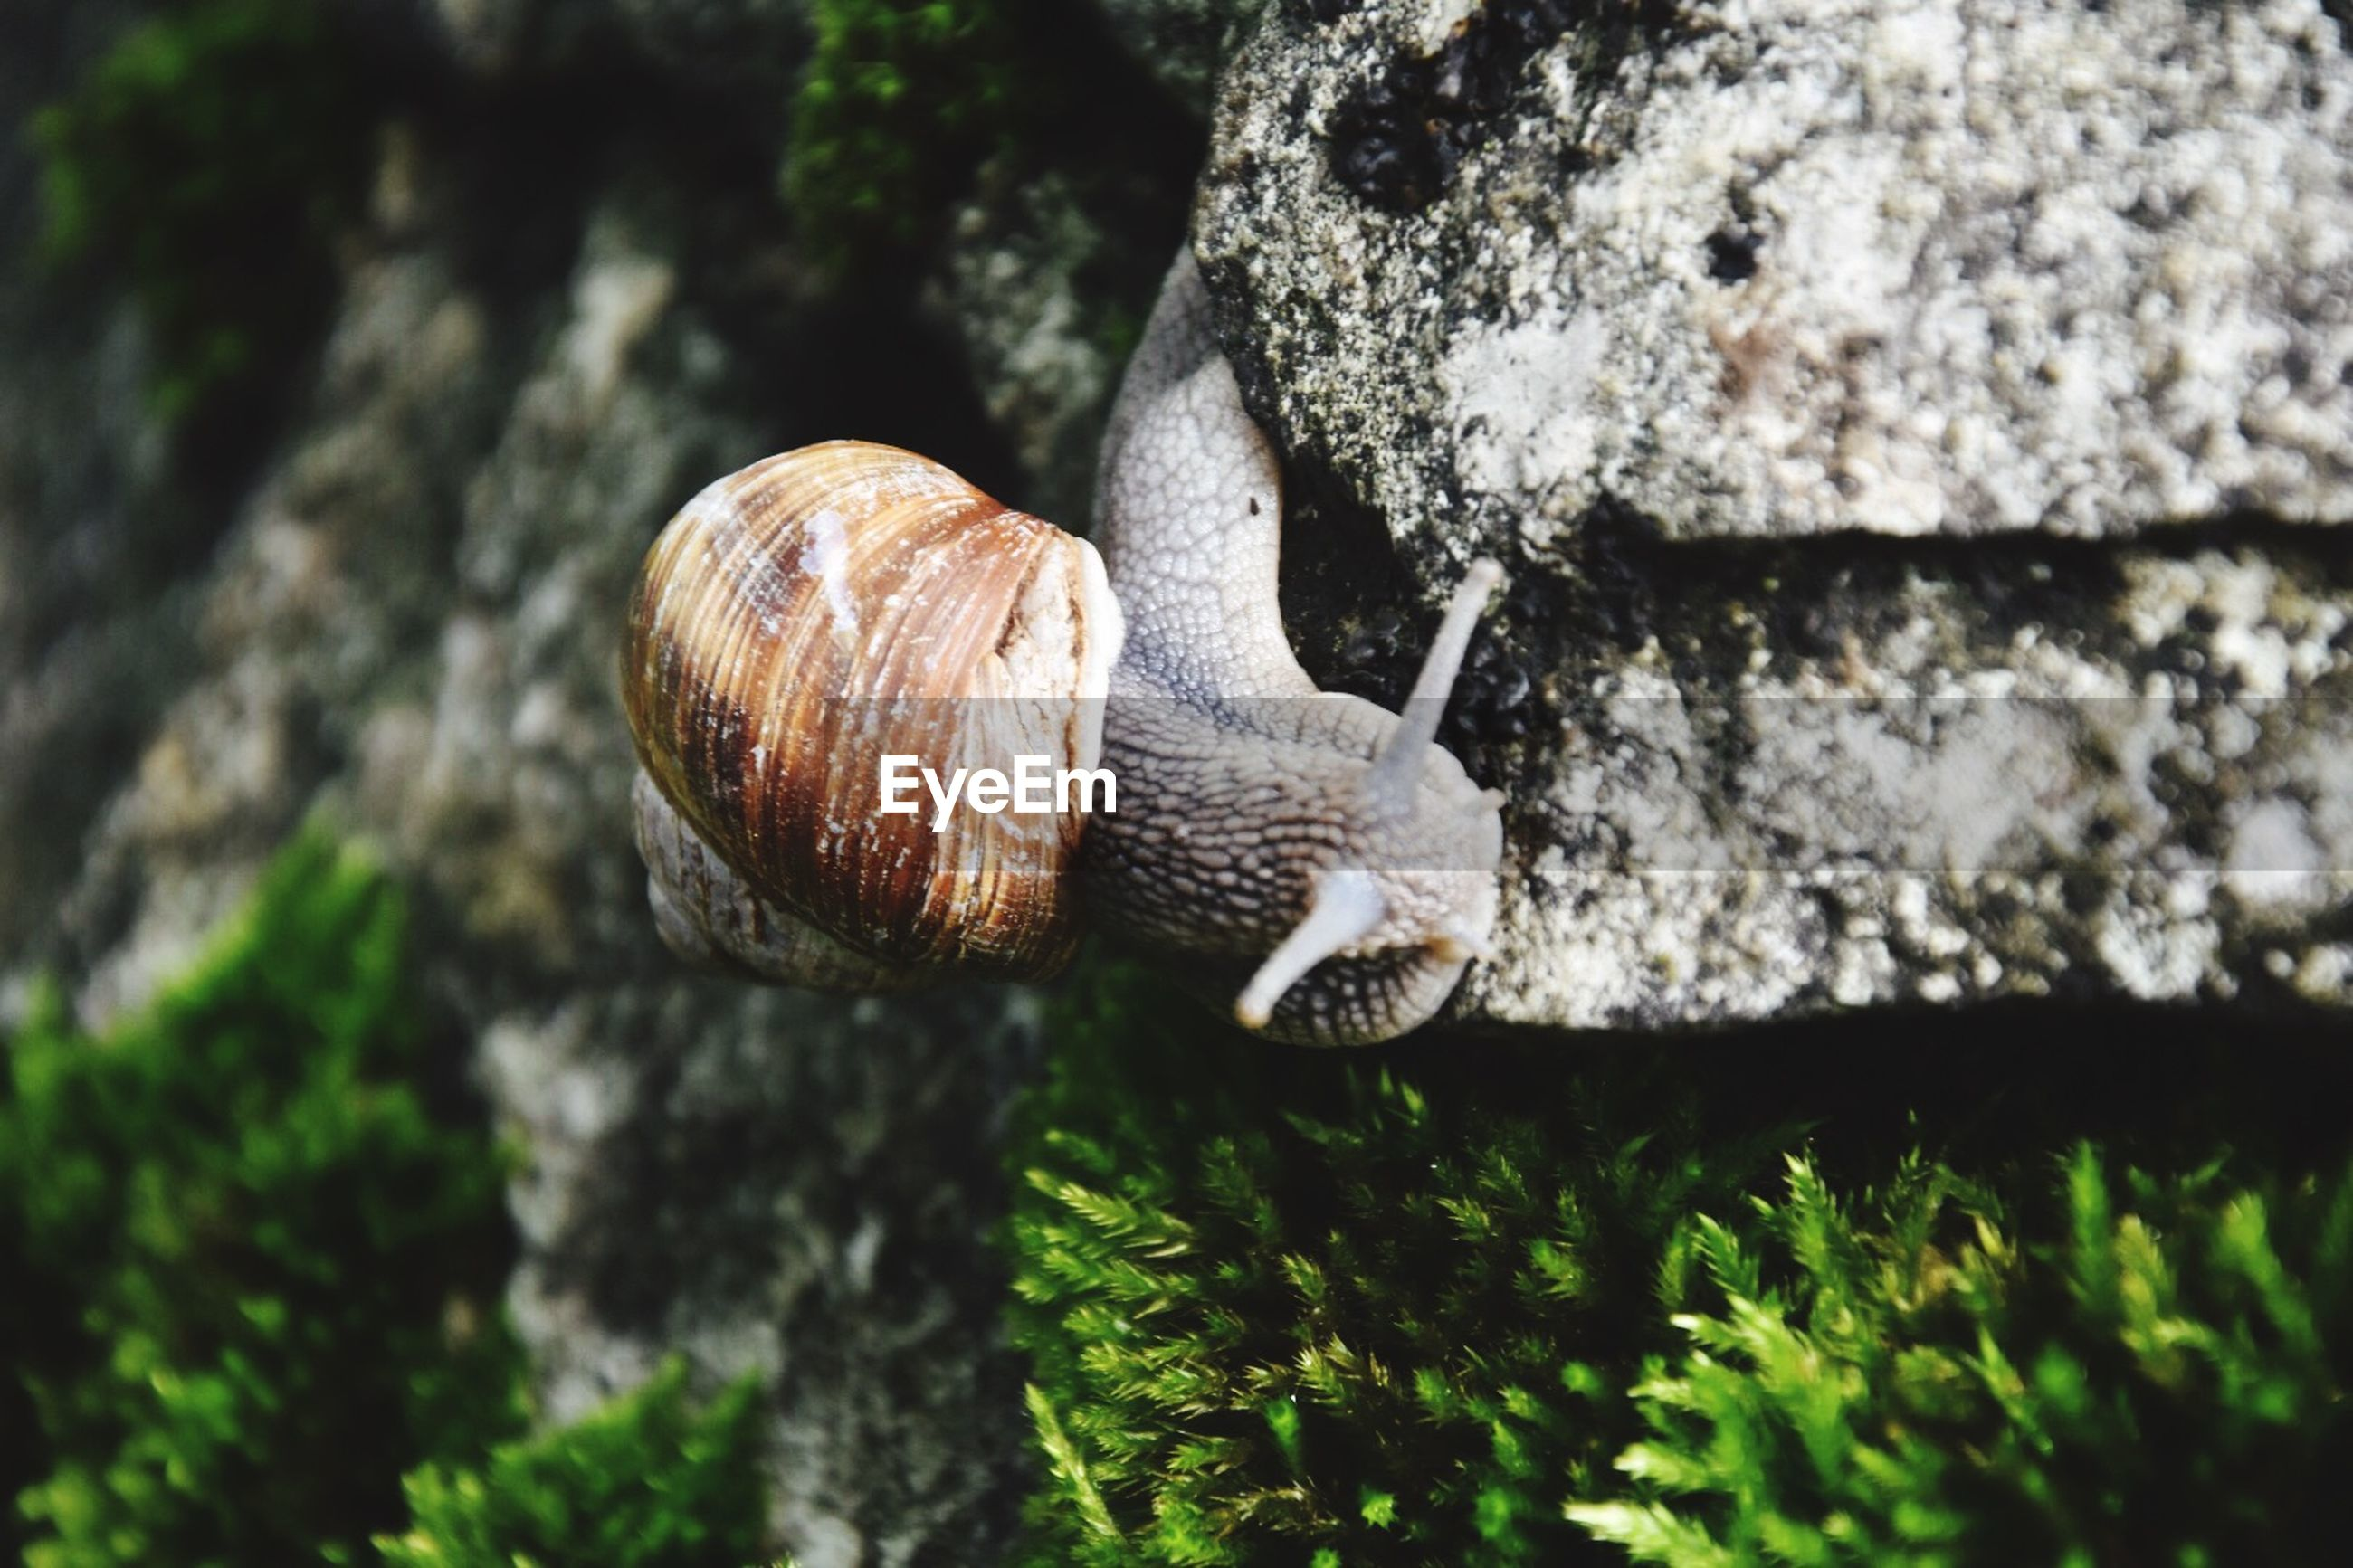 grass, close-up, focus on foreground, field, selective focus, nature, snail, animal shell, growth, mushroom, textured, green color, day, outdoors, wildlife, one animal, animal themes, moss, animals in the wild, tree trunk